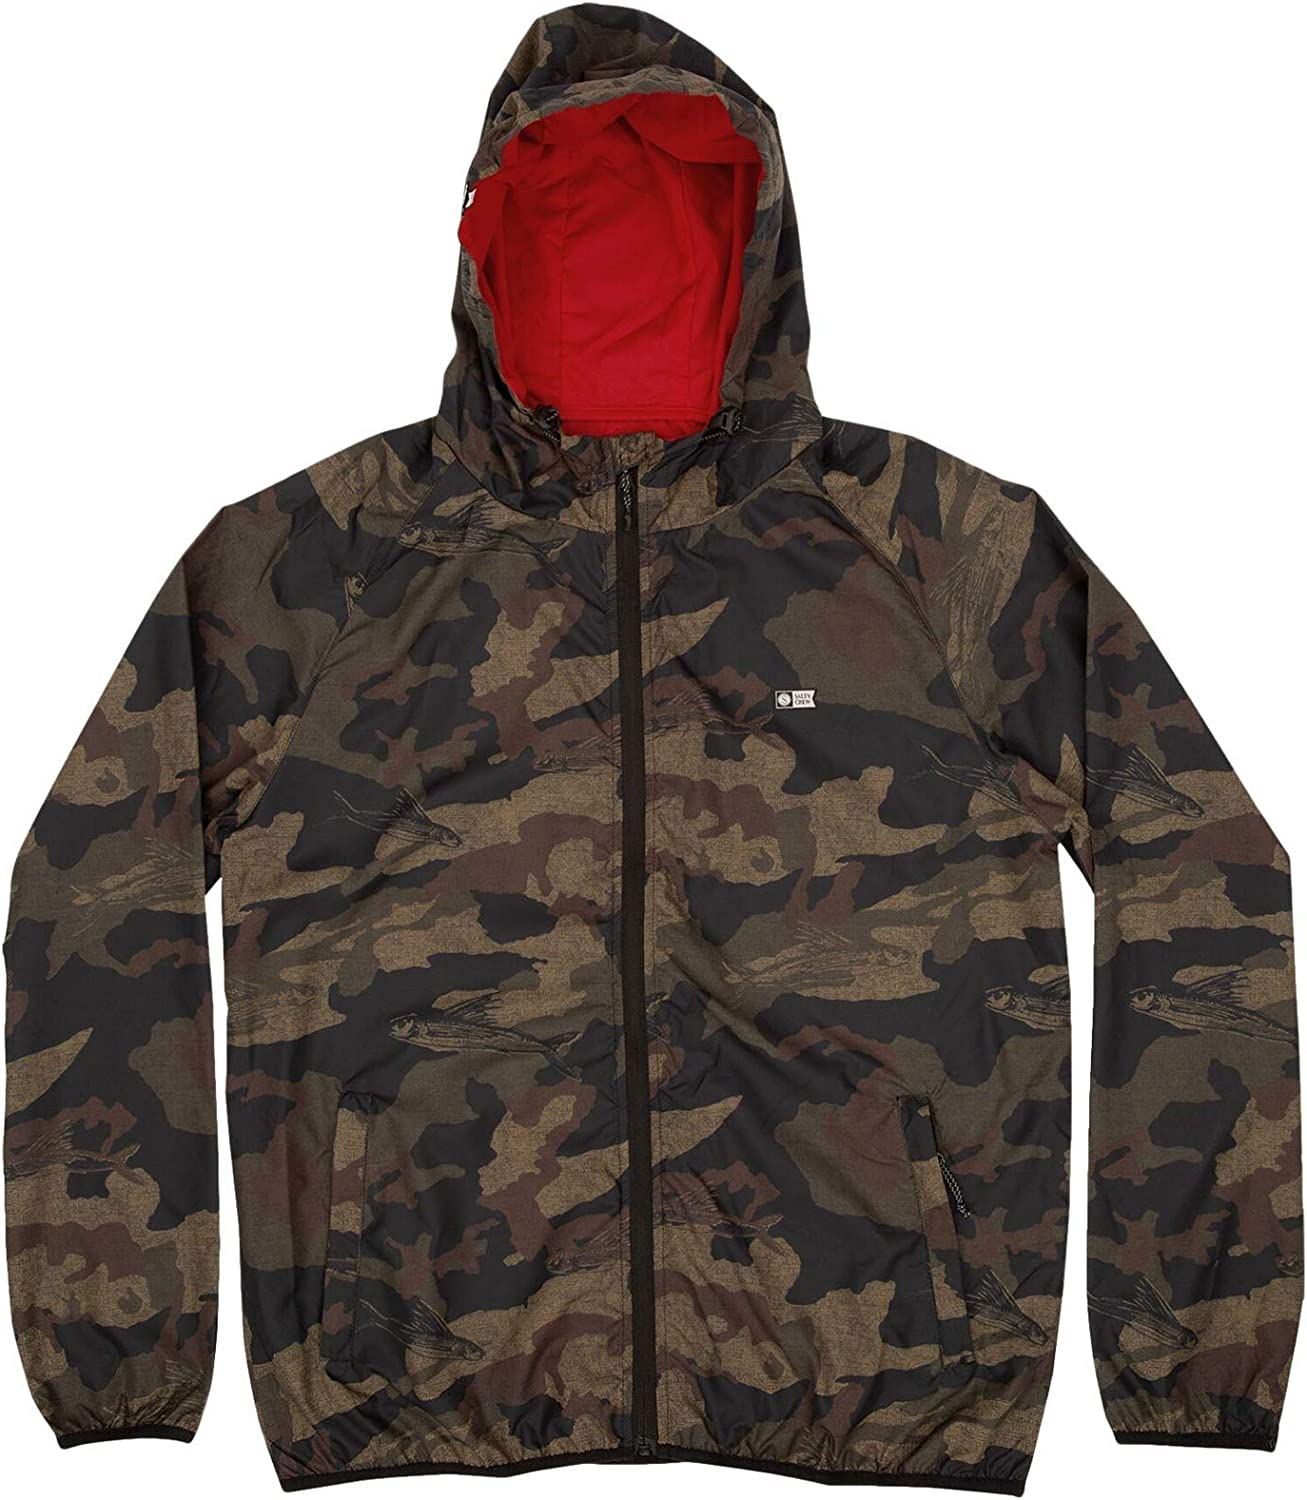 Salty Crew Seawall Limited time for free shipping Dealing full price reduction Jacket Packable